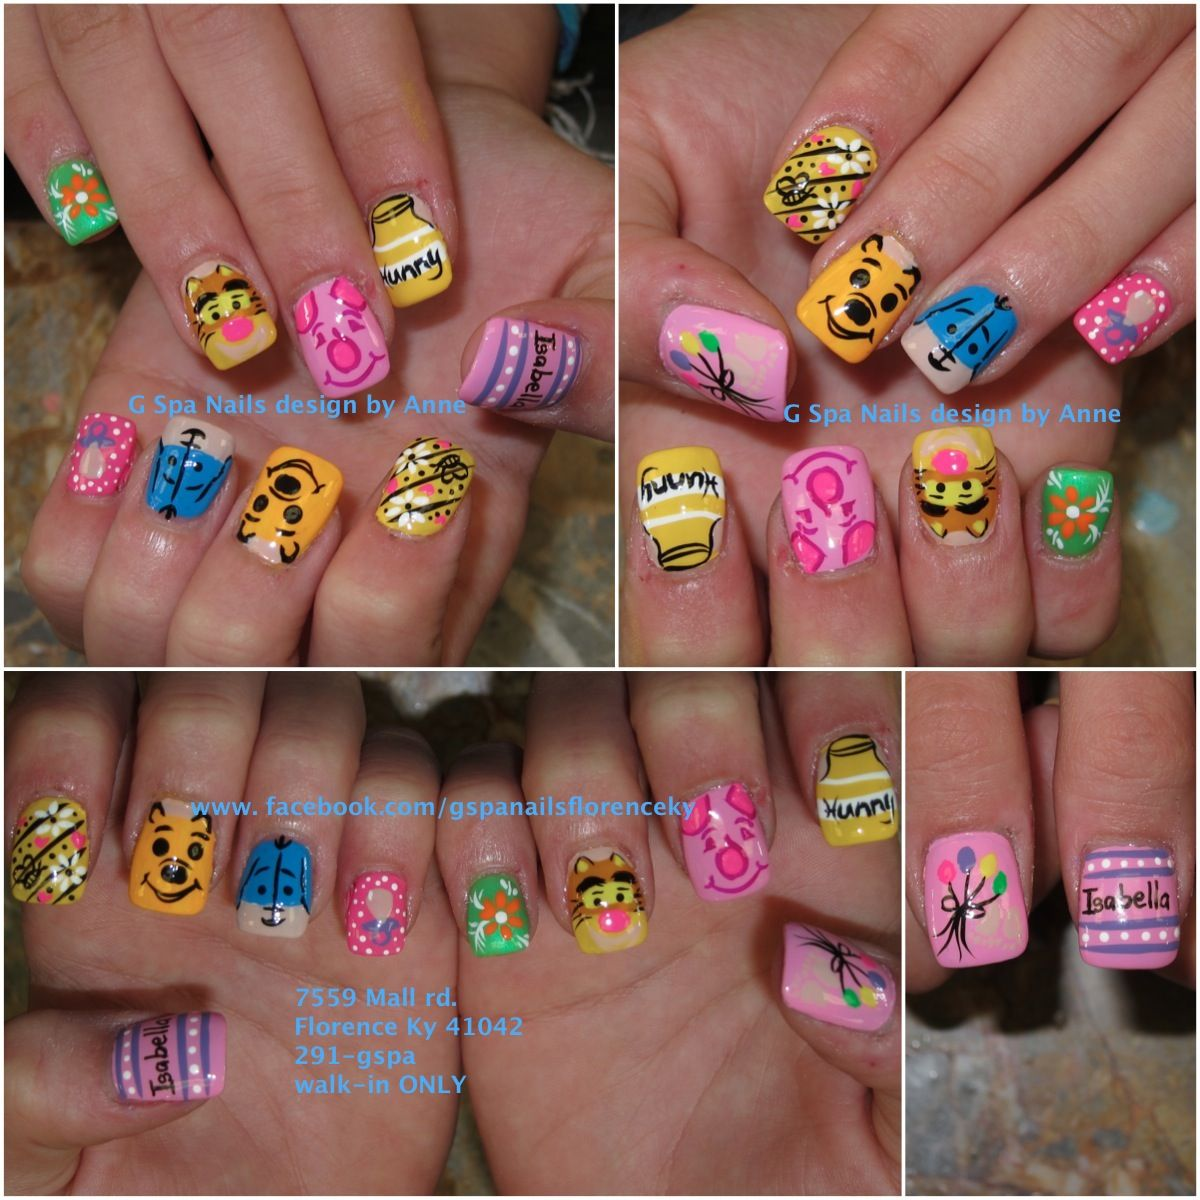 winnie the pooh nail designs Free Nail Technician Information http ...